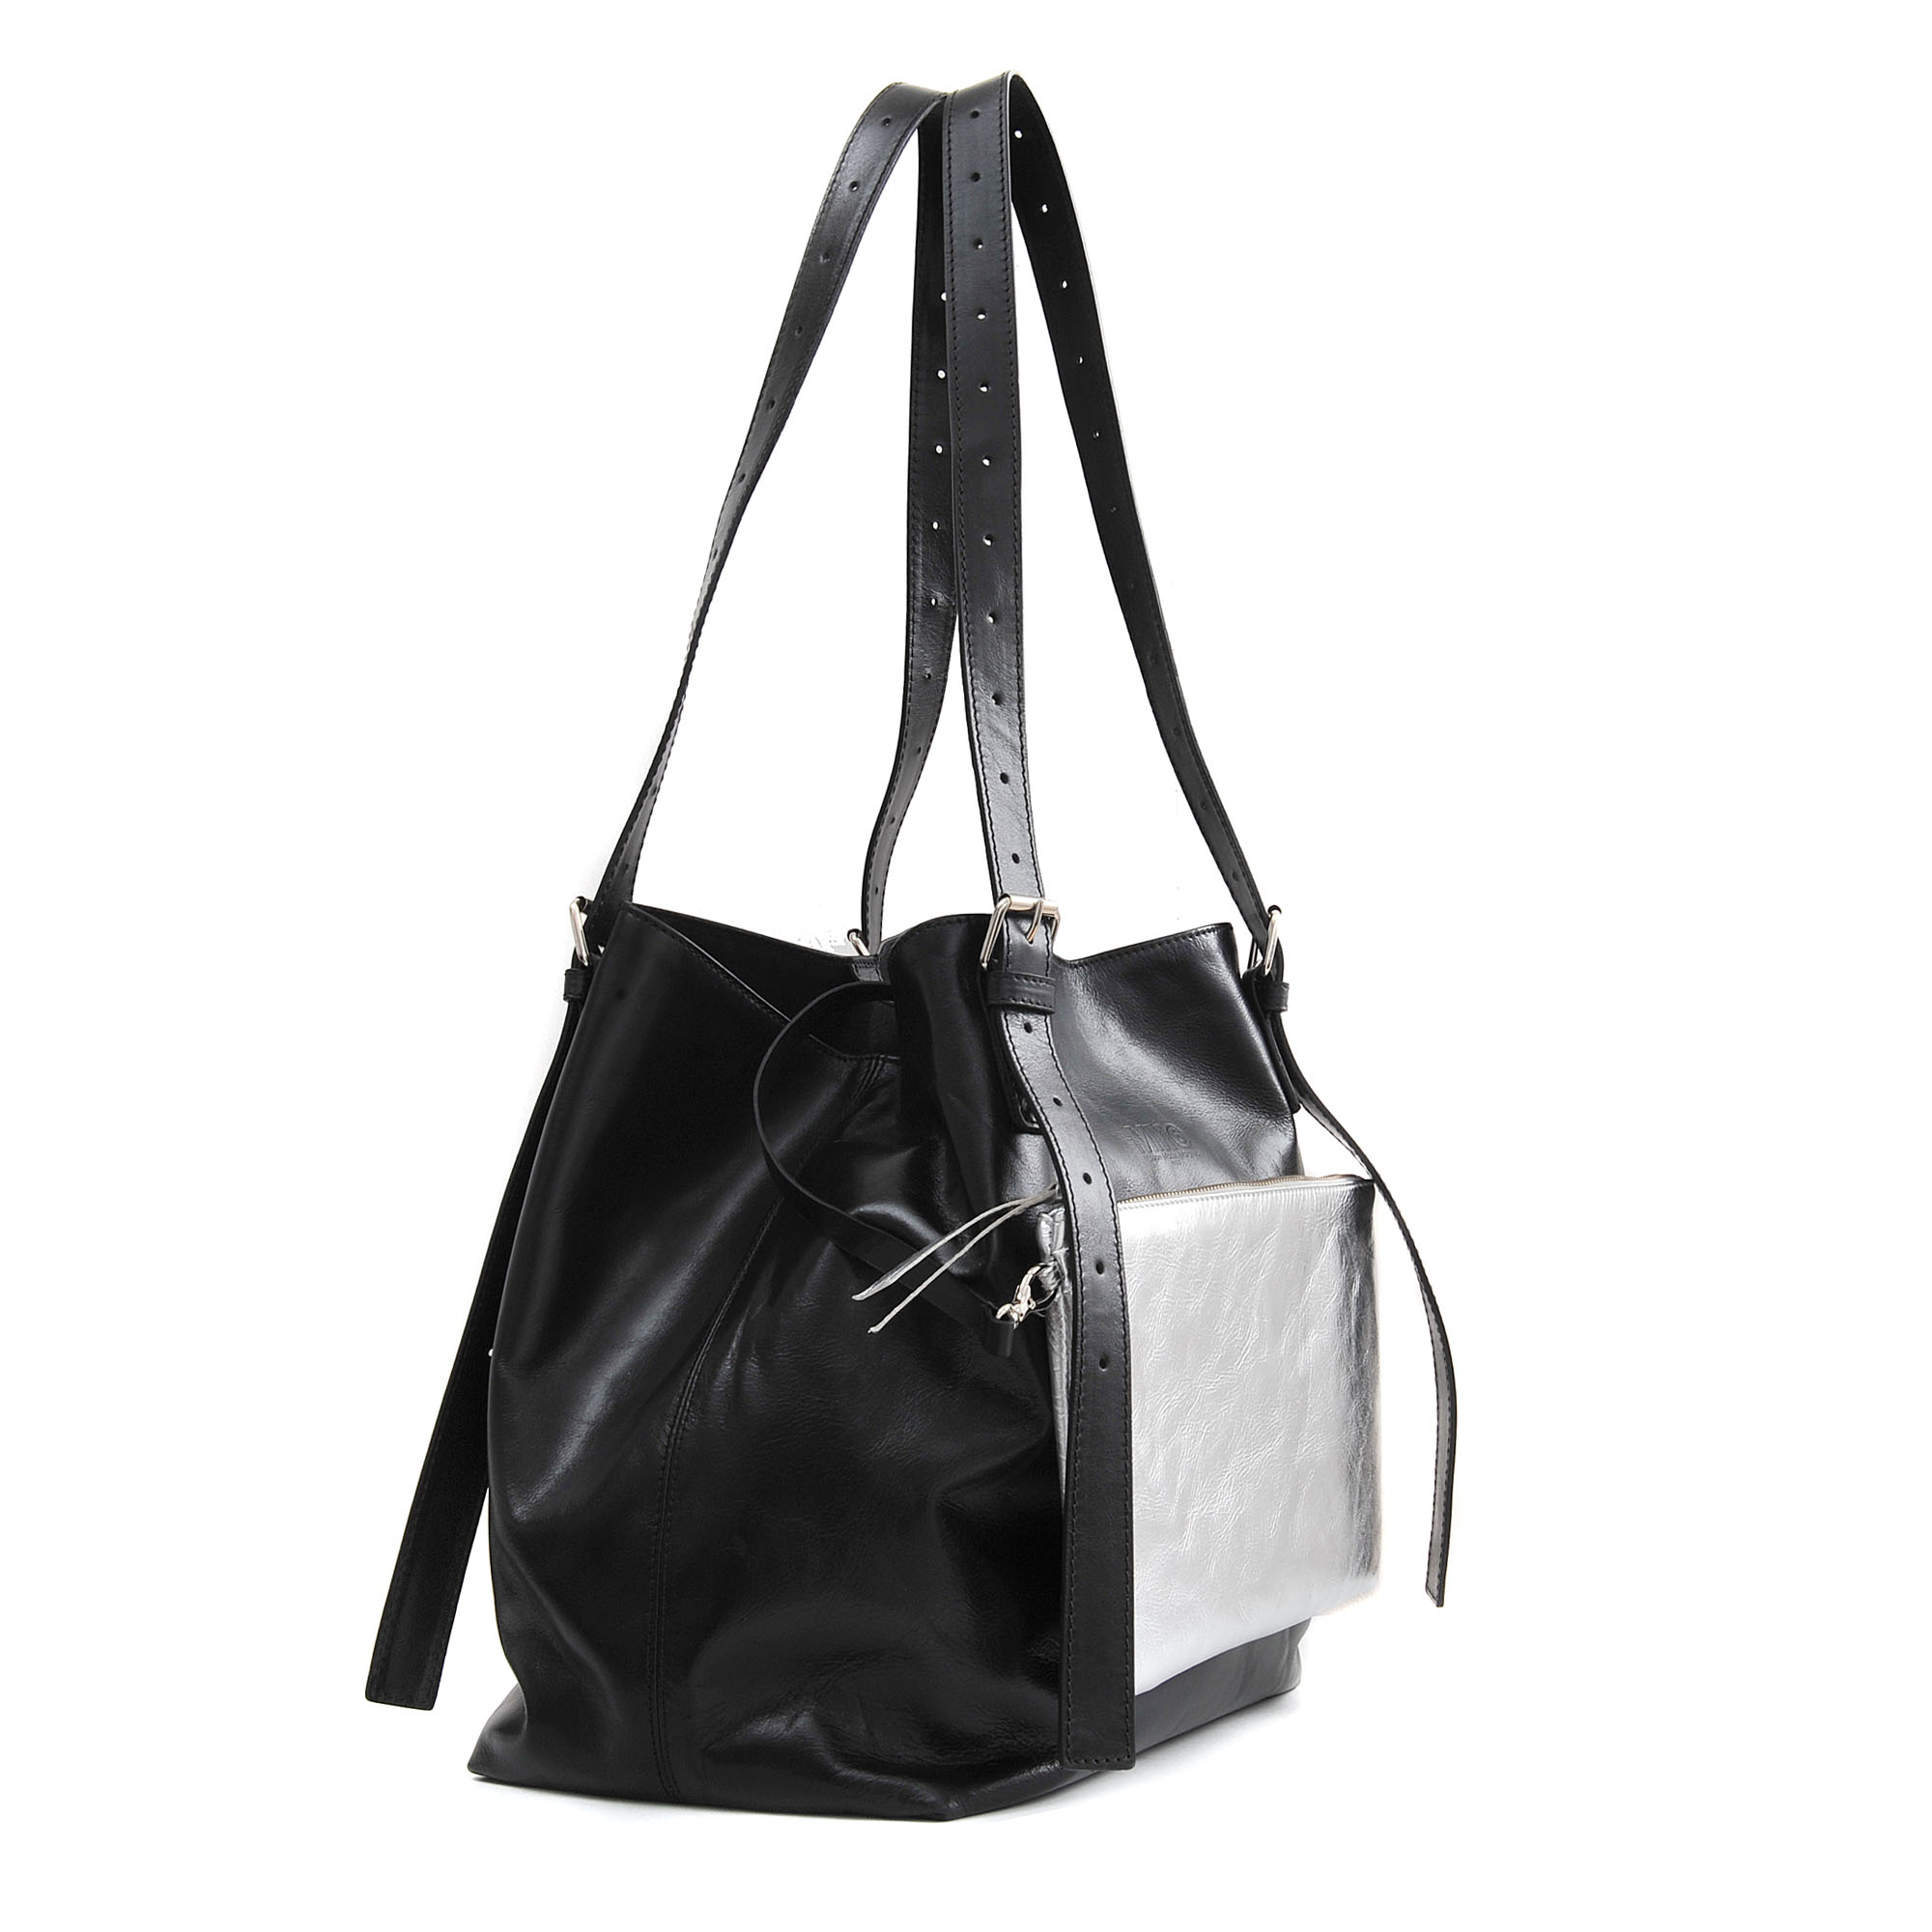 Mm6 by maison martin margiela sailor tote bag in black lyst for Mm6 maison margiela